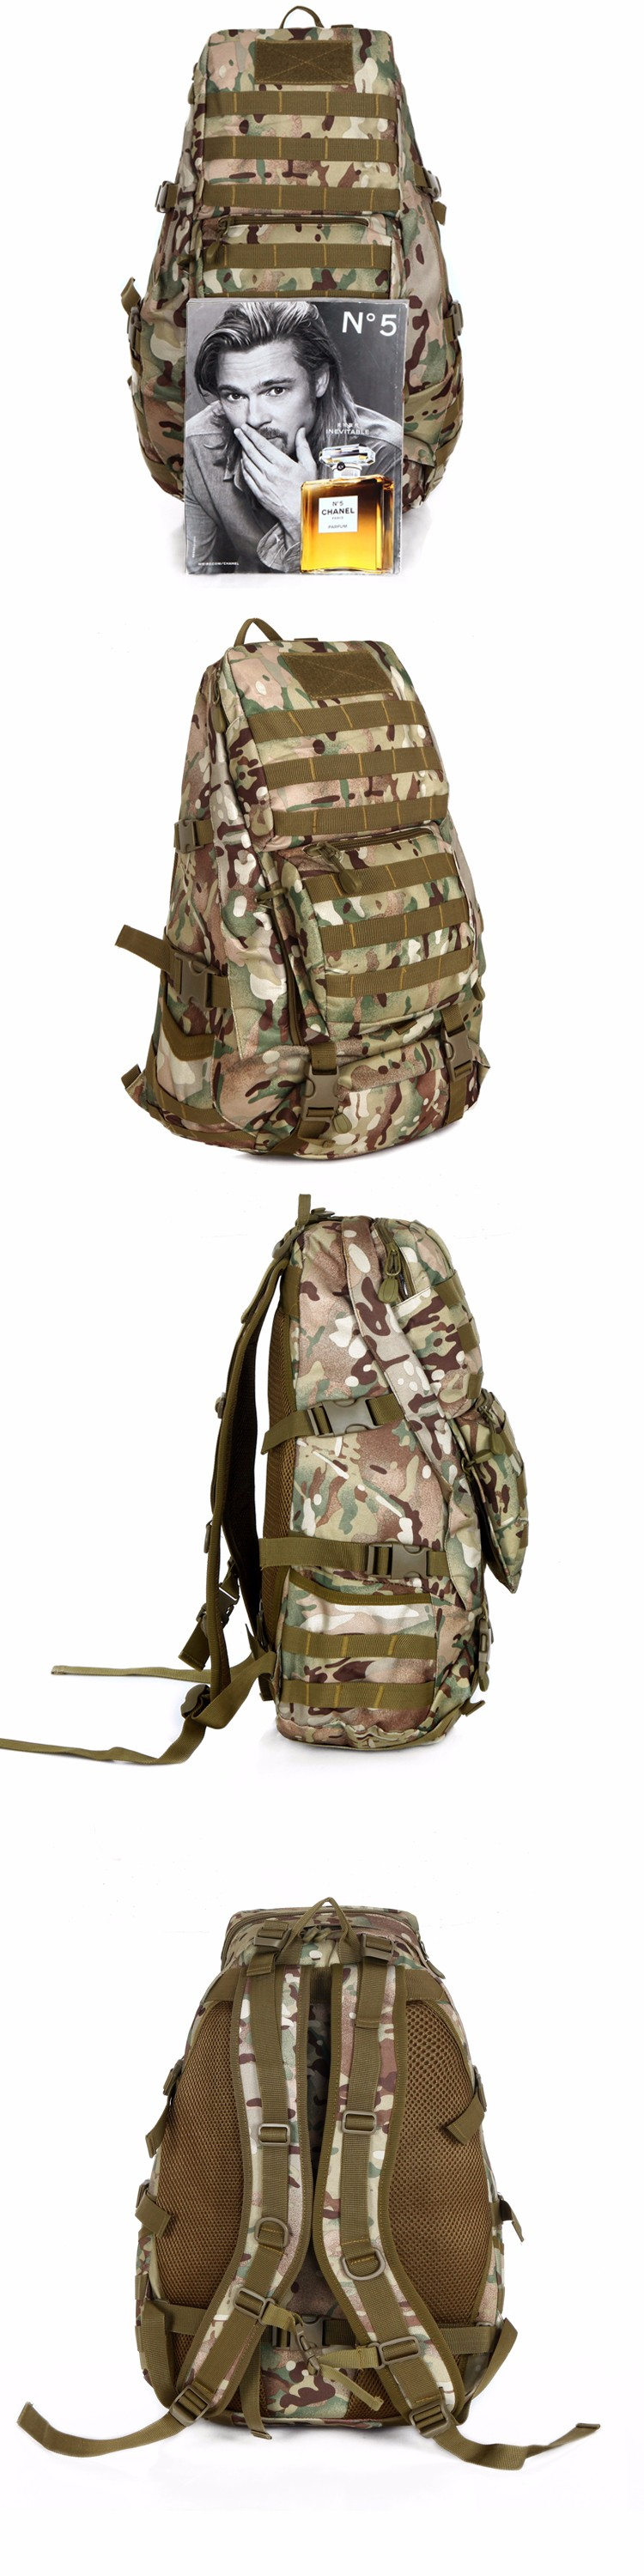 1b48de63d3cd Military Backpack Army Rucksack Mountain Bags Military Bag - Buy ...